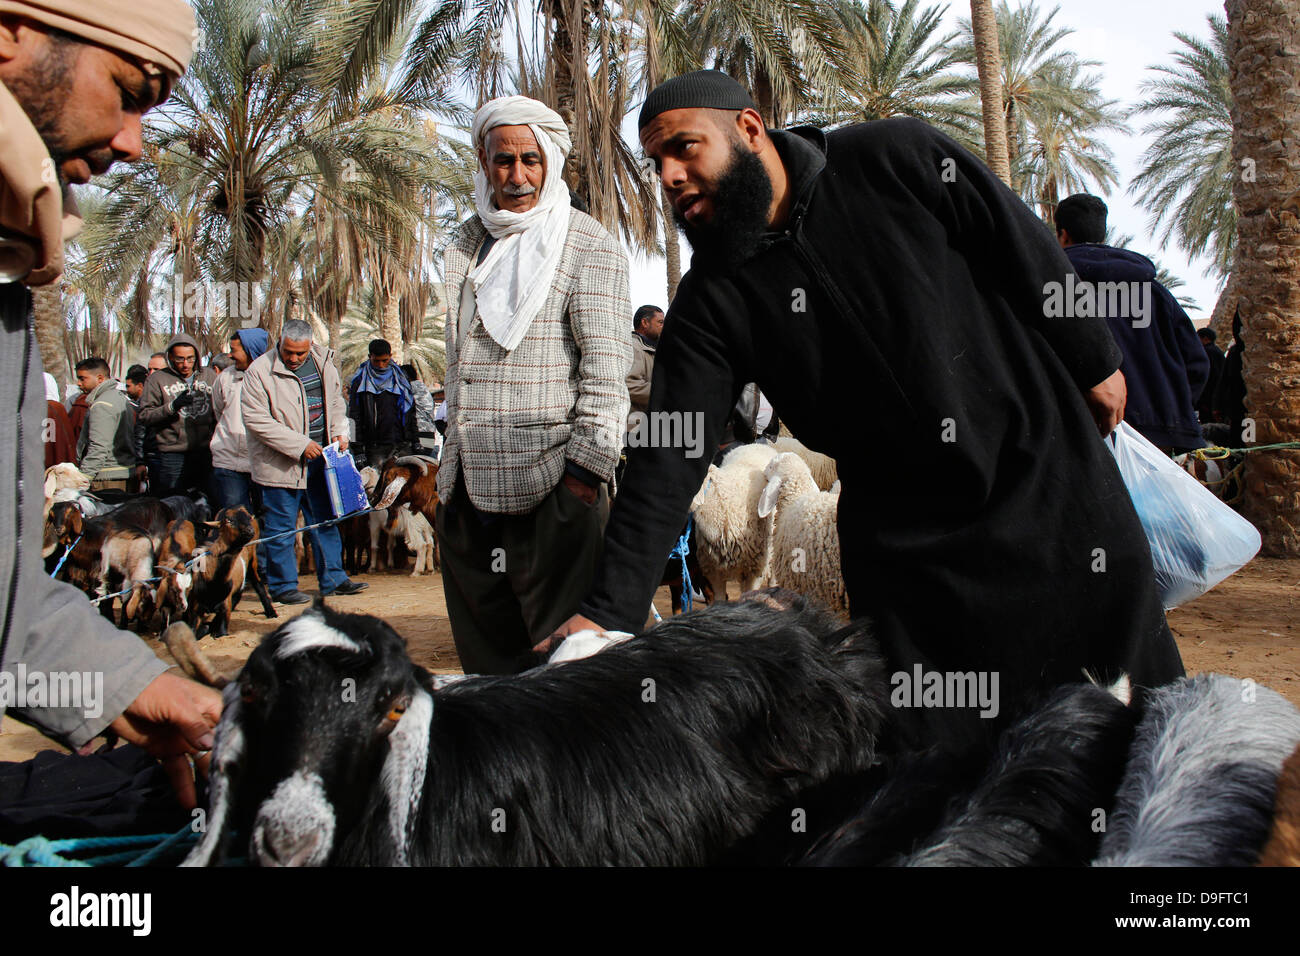 Weekly cattle market in Douz, southern Tunisia, Africa - Stock Image